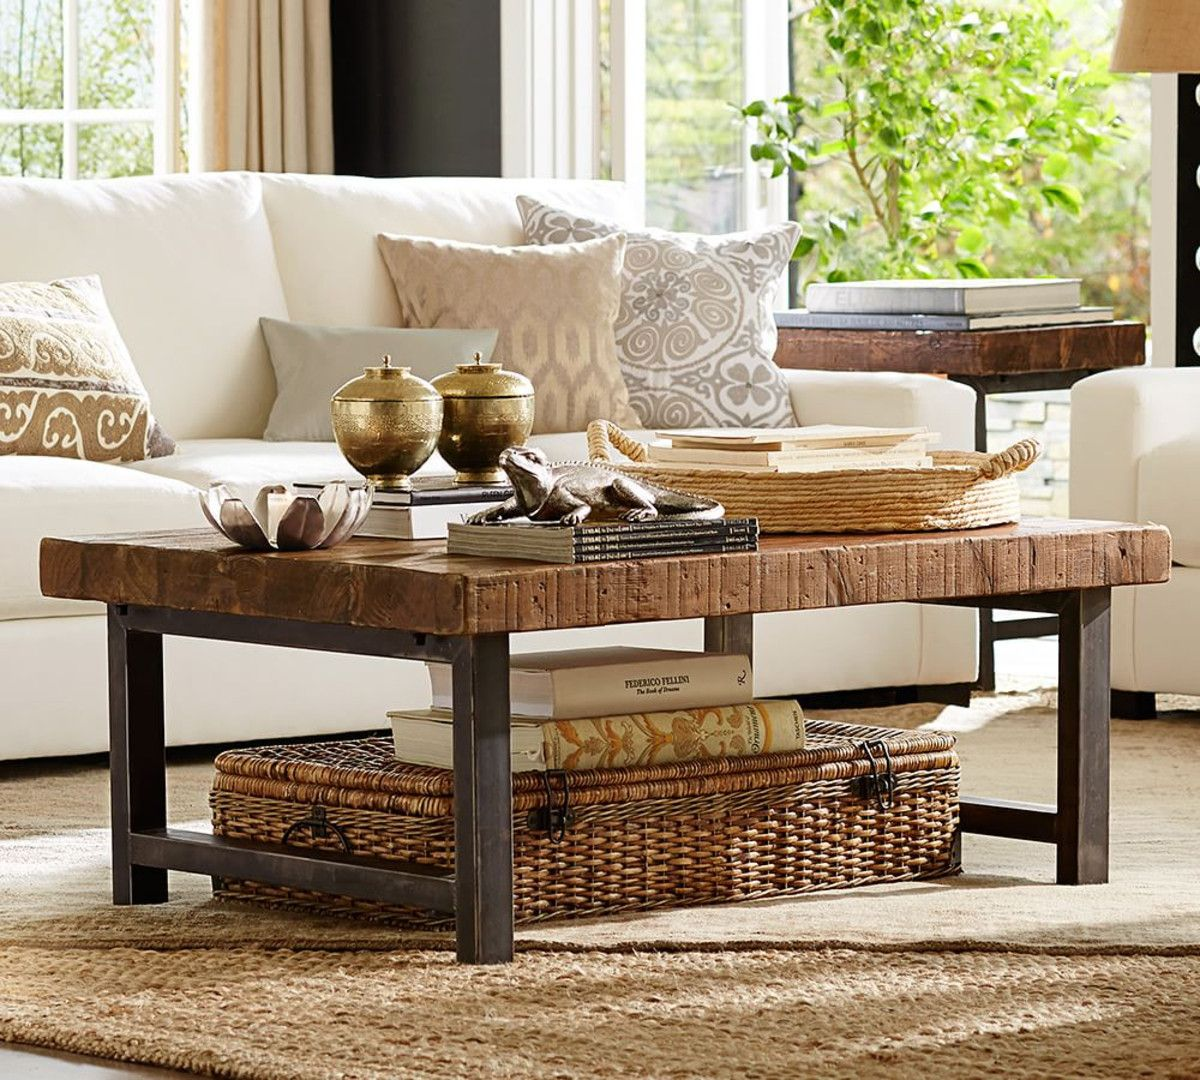 Griffin Coffee Table  Coffee table pottery barn, Home, Coffee table